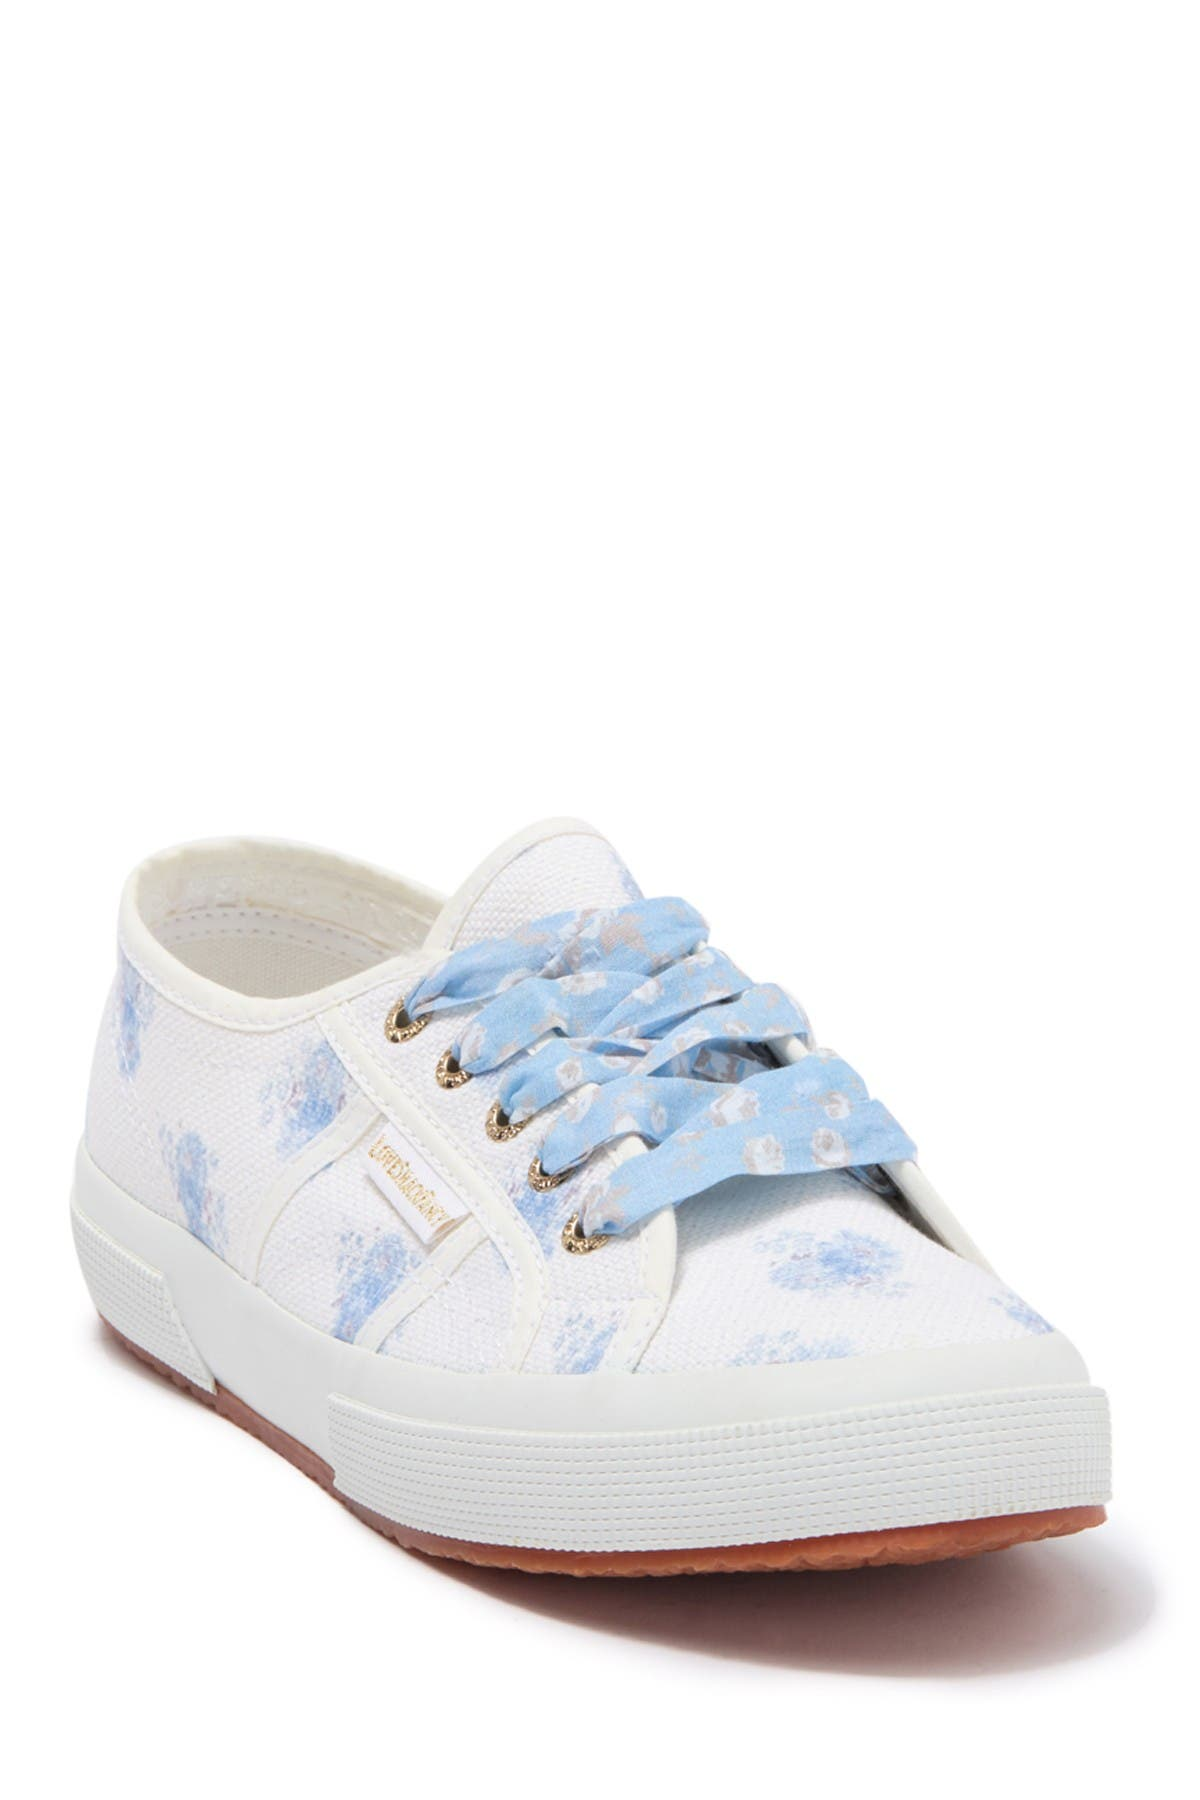 Image of Superga 2750 Fancotw Sneaker